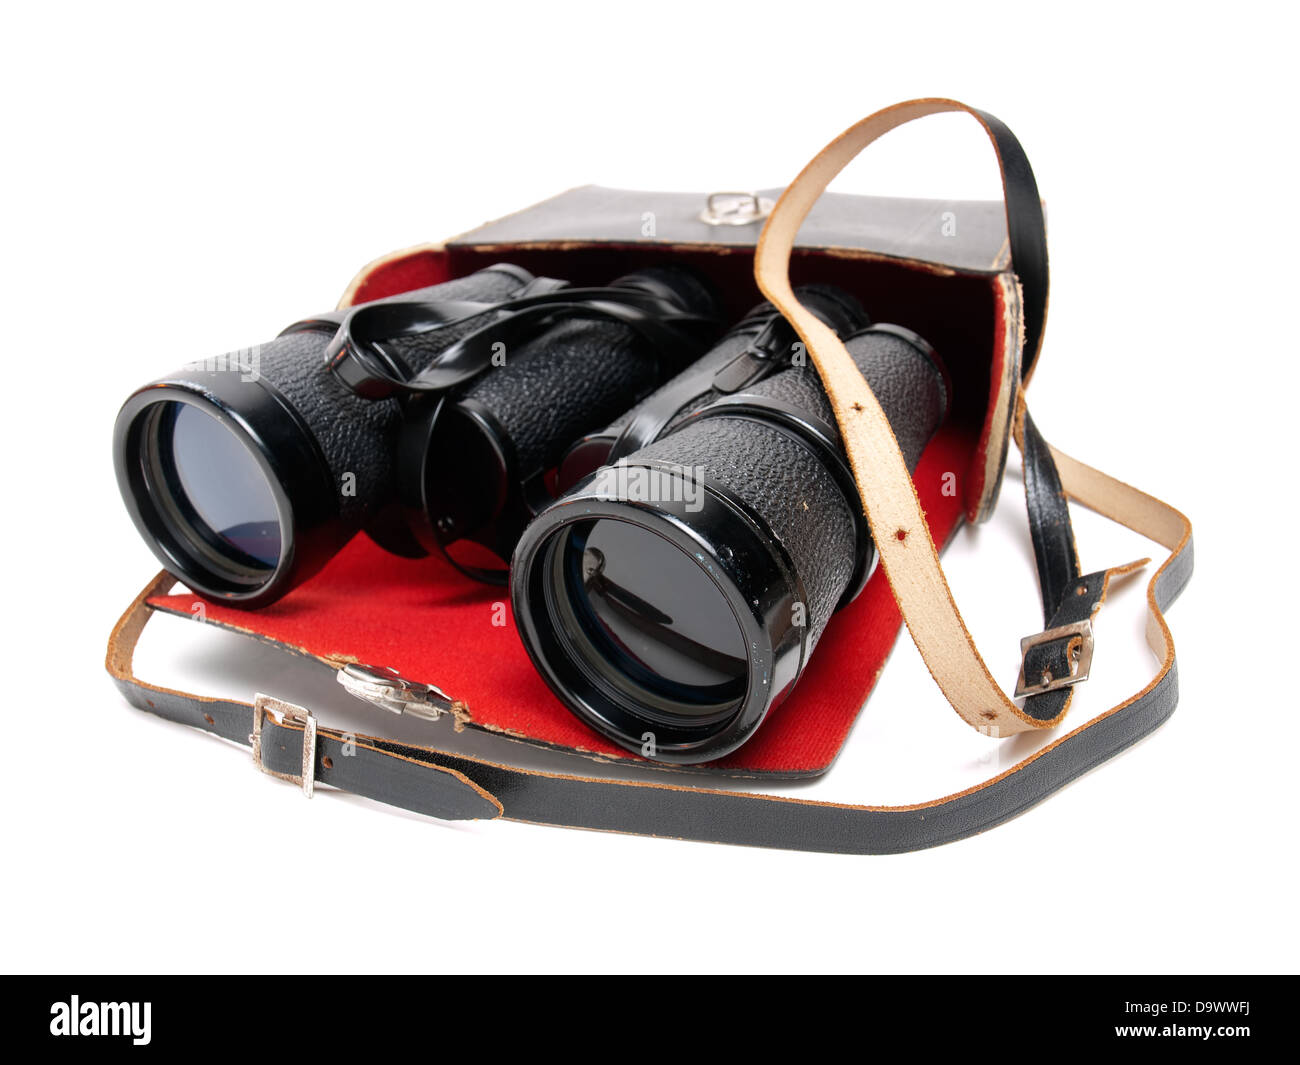 Retro binoculars in a bag on a white background. - Stock Image